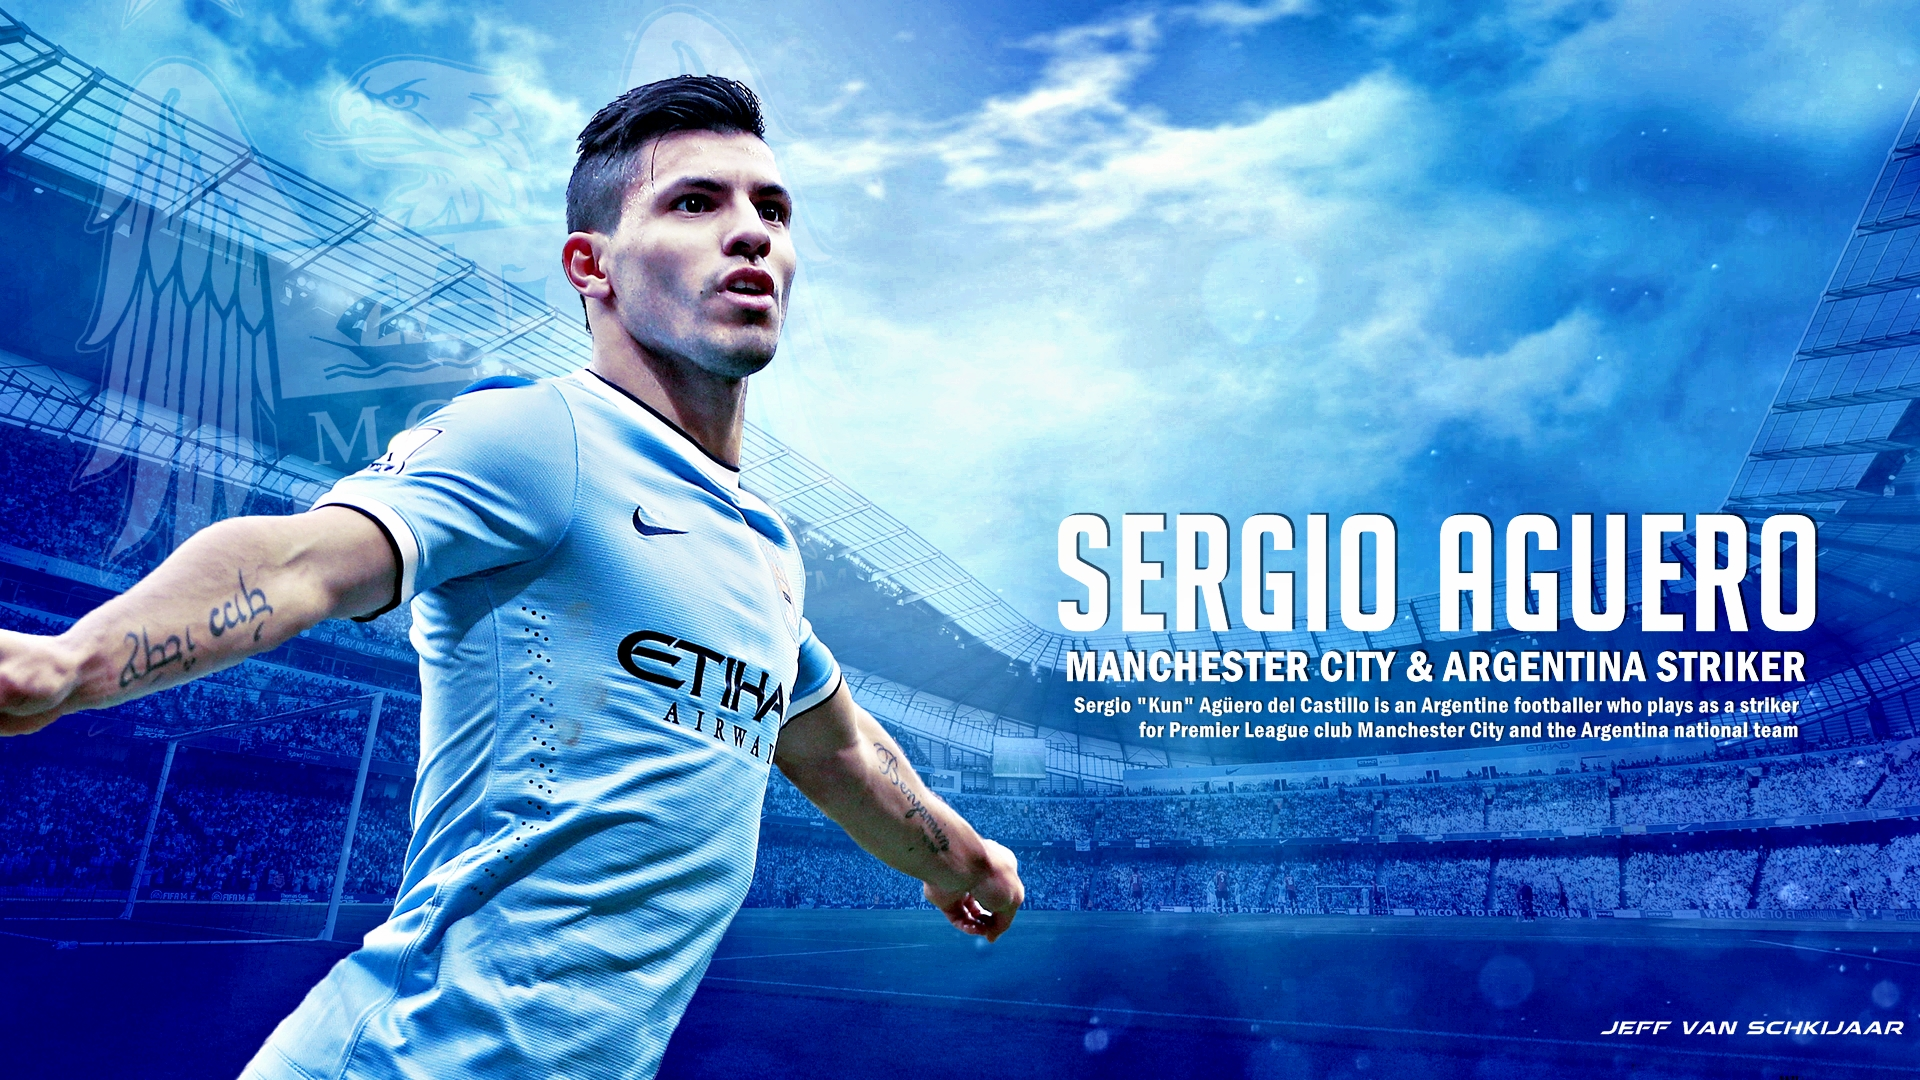 Sergio Aguero Wallpapers High Resolution And Quality Downloadsergio